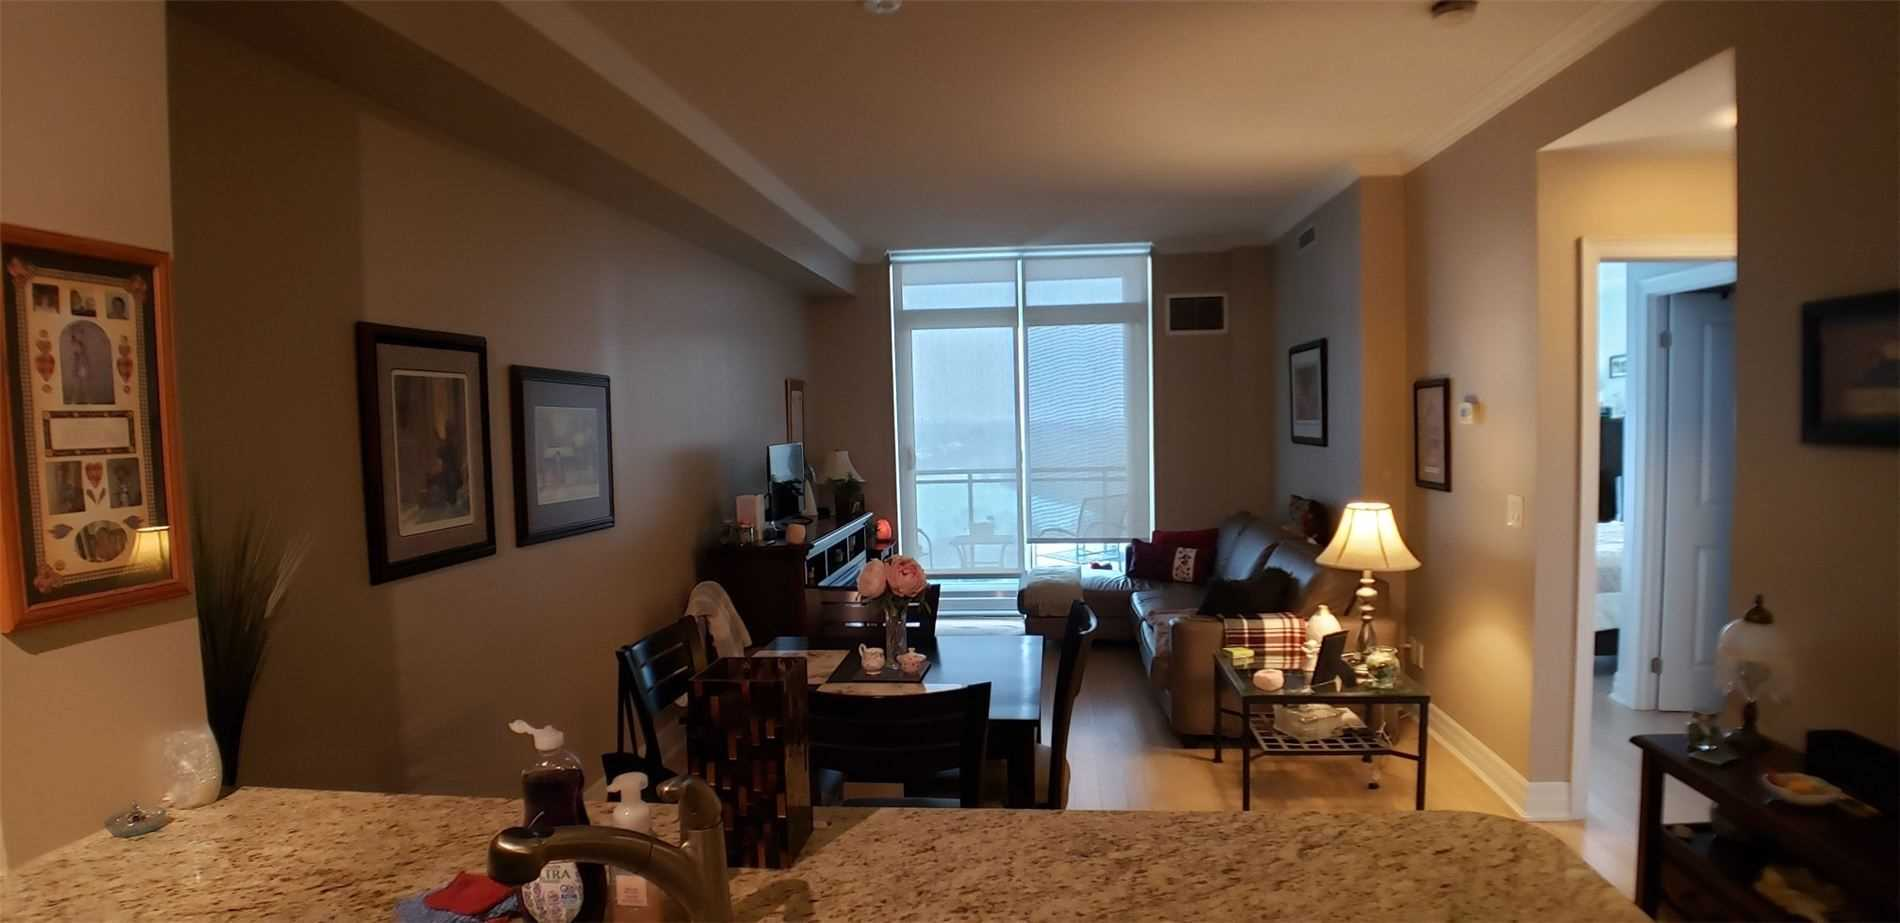 Image 14 of 15 showing inside of 1 Bedroom Condo Apt Apartment for Sale at 100 John St Unit# 803, Brampton L6W0A8